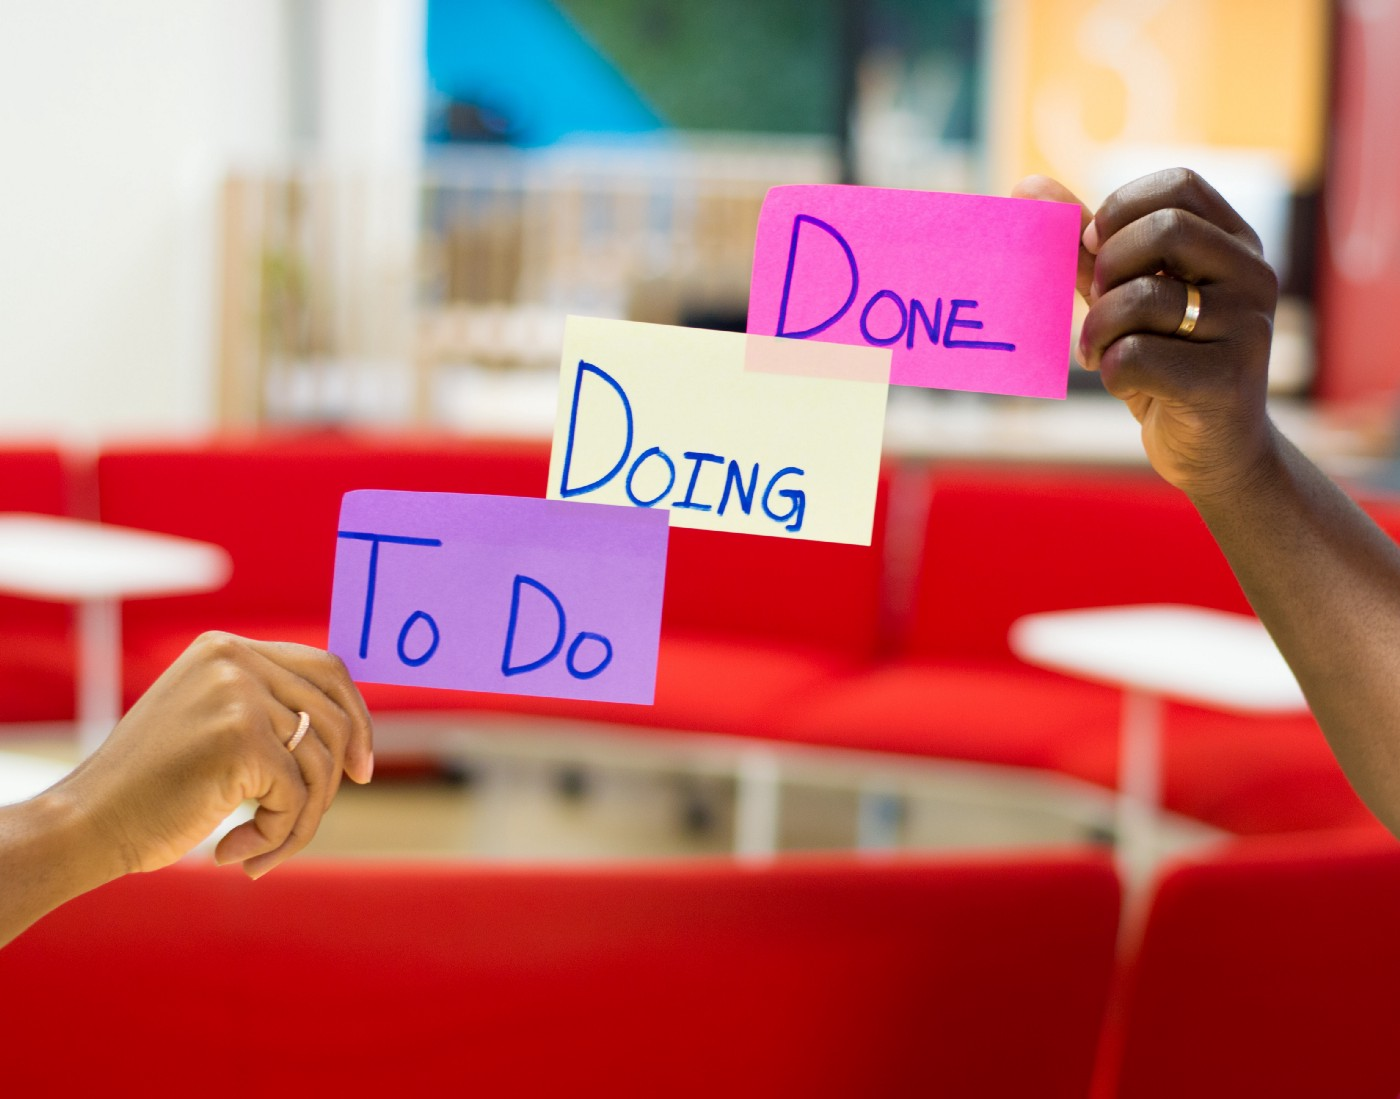 A picture of hands holding sticky notes with the words 'To Do', 'Doing', and 'Done' written on it.